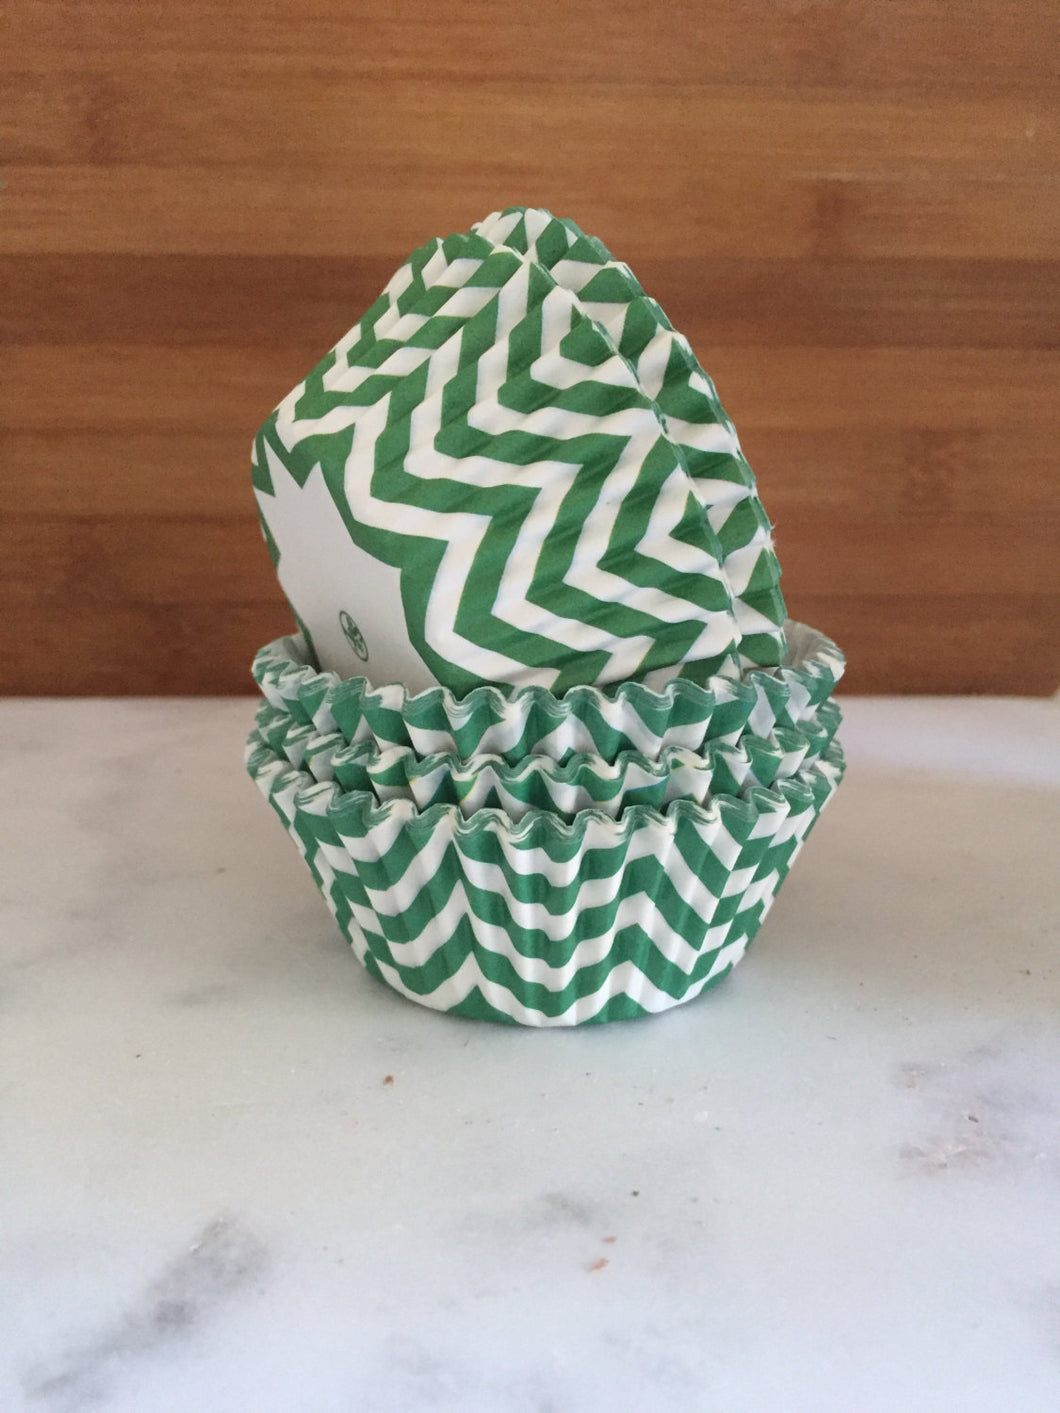 Green Chevron BakeBright Cupcake Liners, Standard Sized, Baking Cups (50)